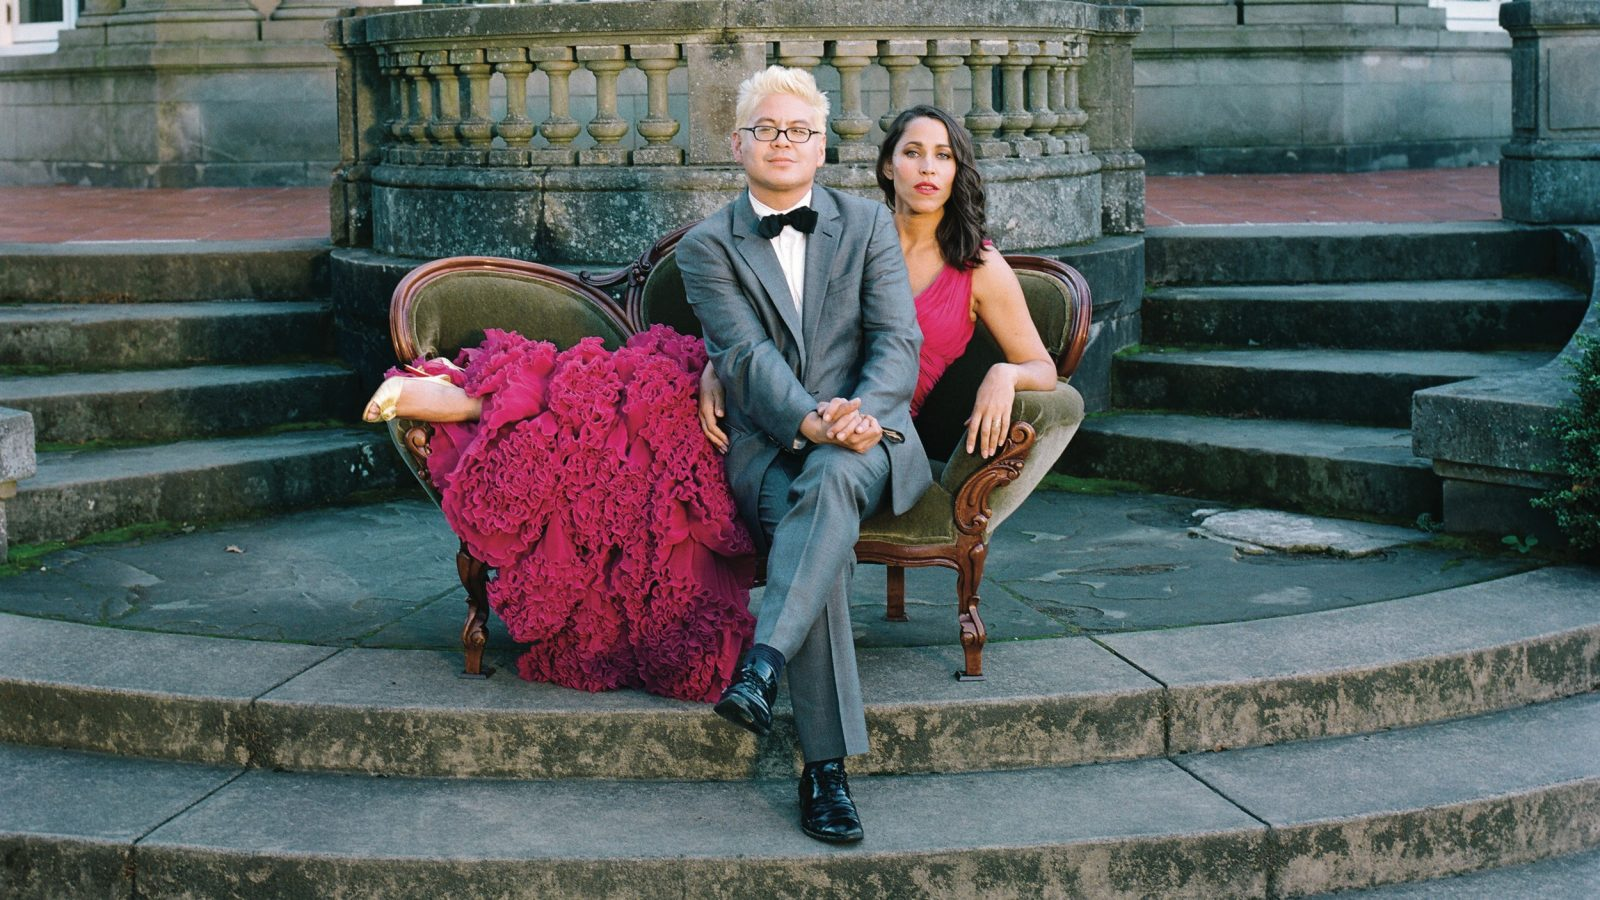 Thomas Lauderdale and China Forbes, who is wearing a pink ball gown, of Pink Martini on an olive green love seat in front of a large house